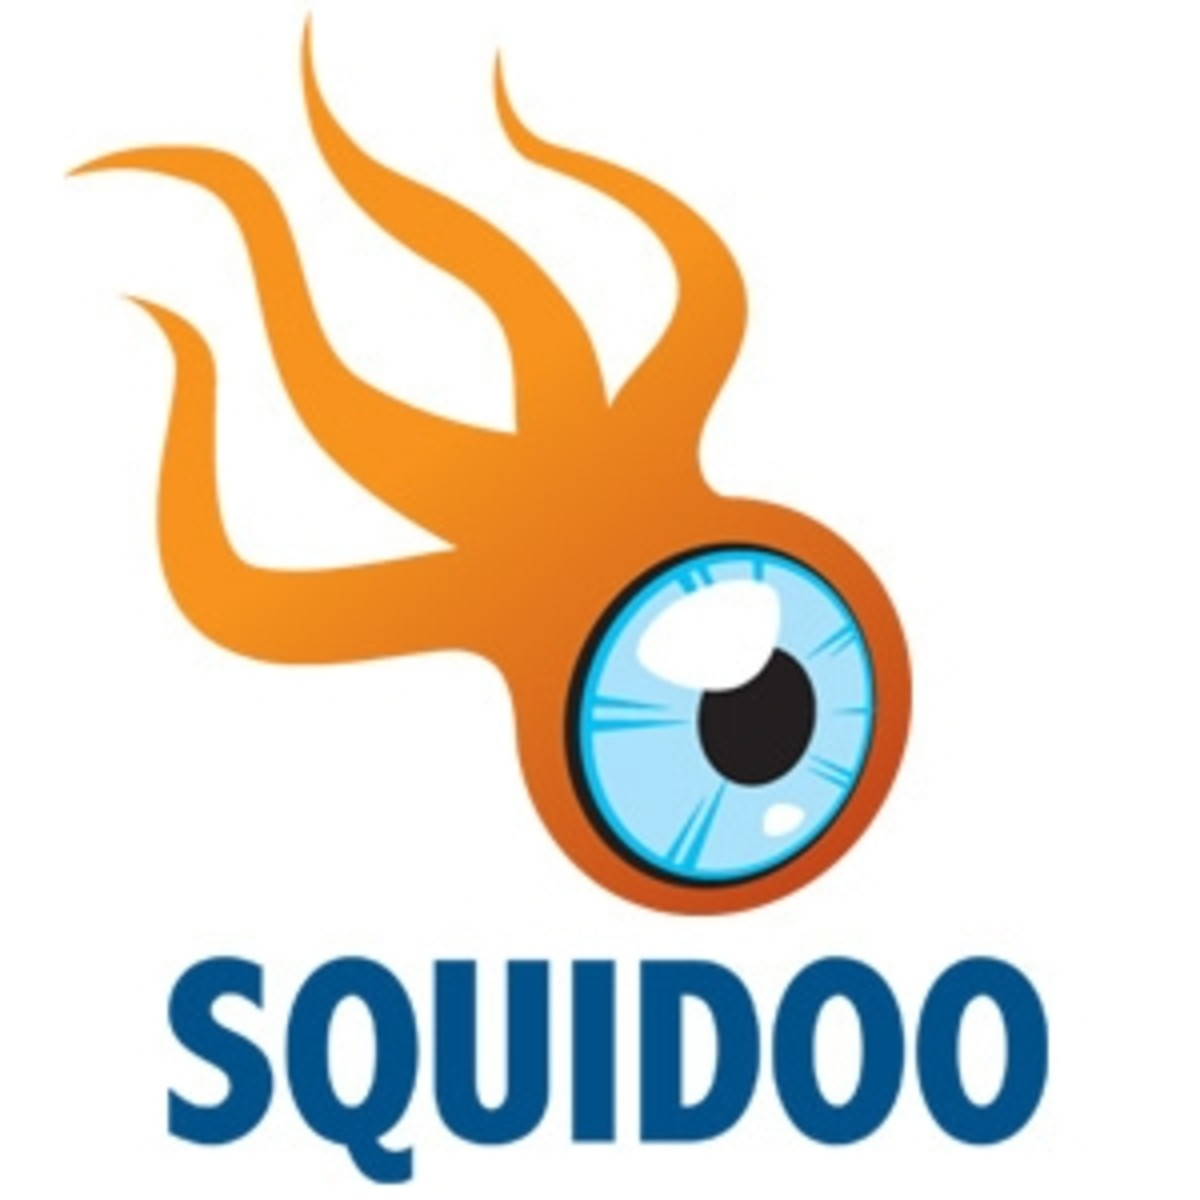 Squidoo.com Logo (TM)